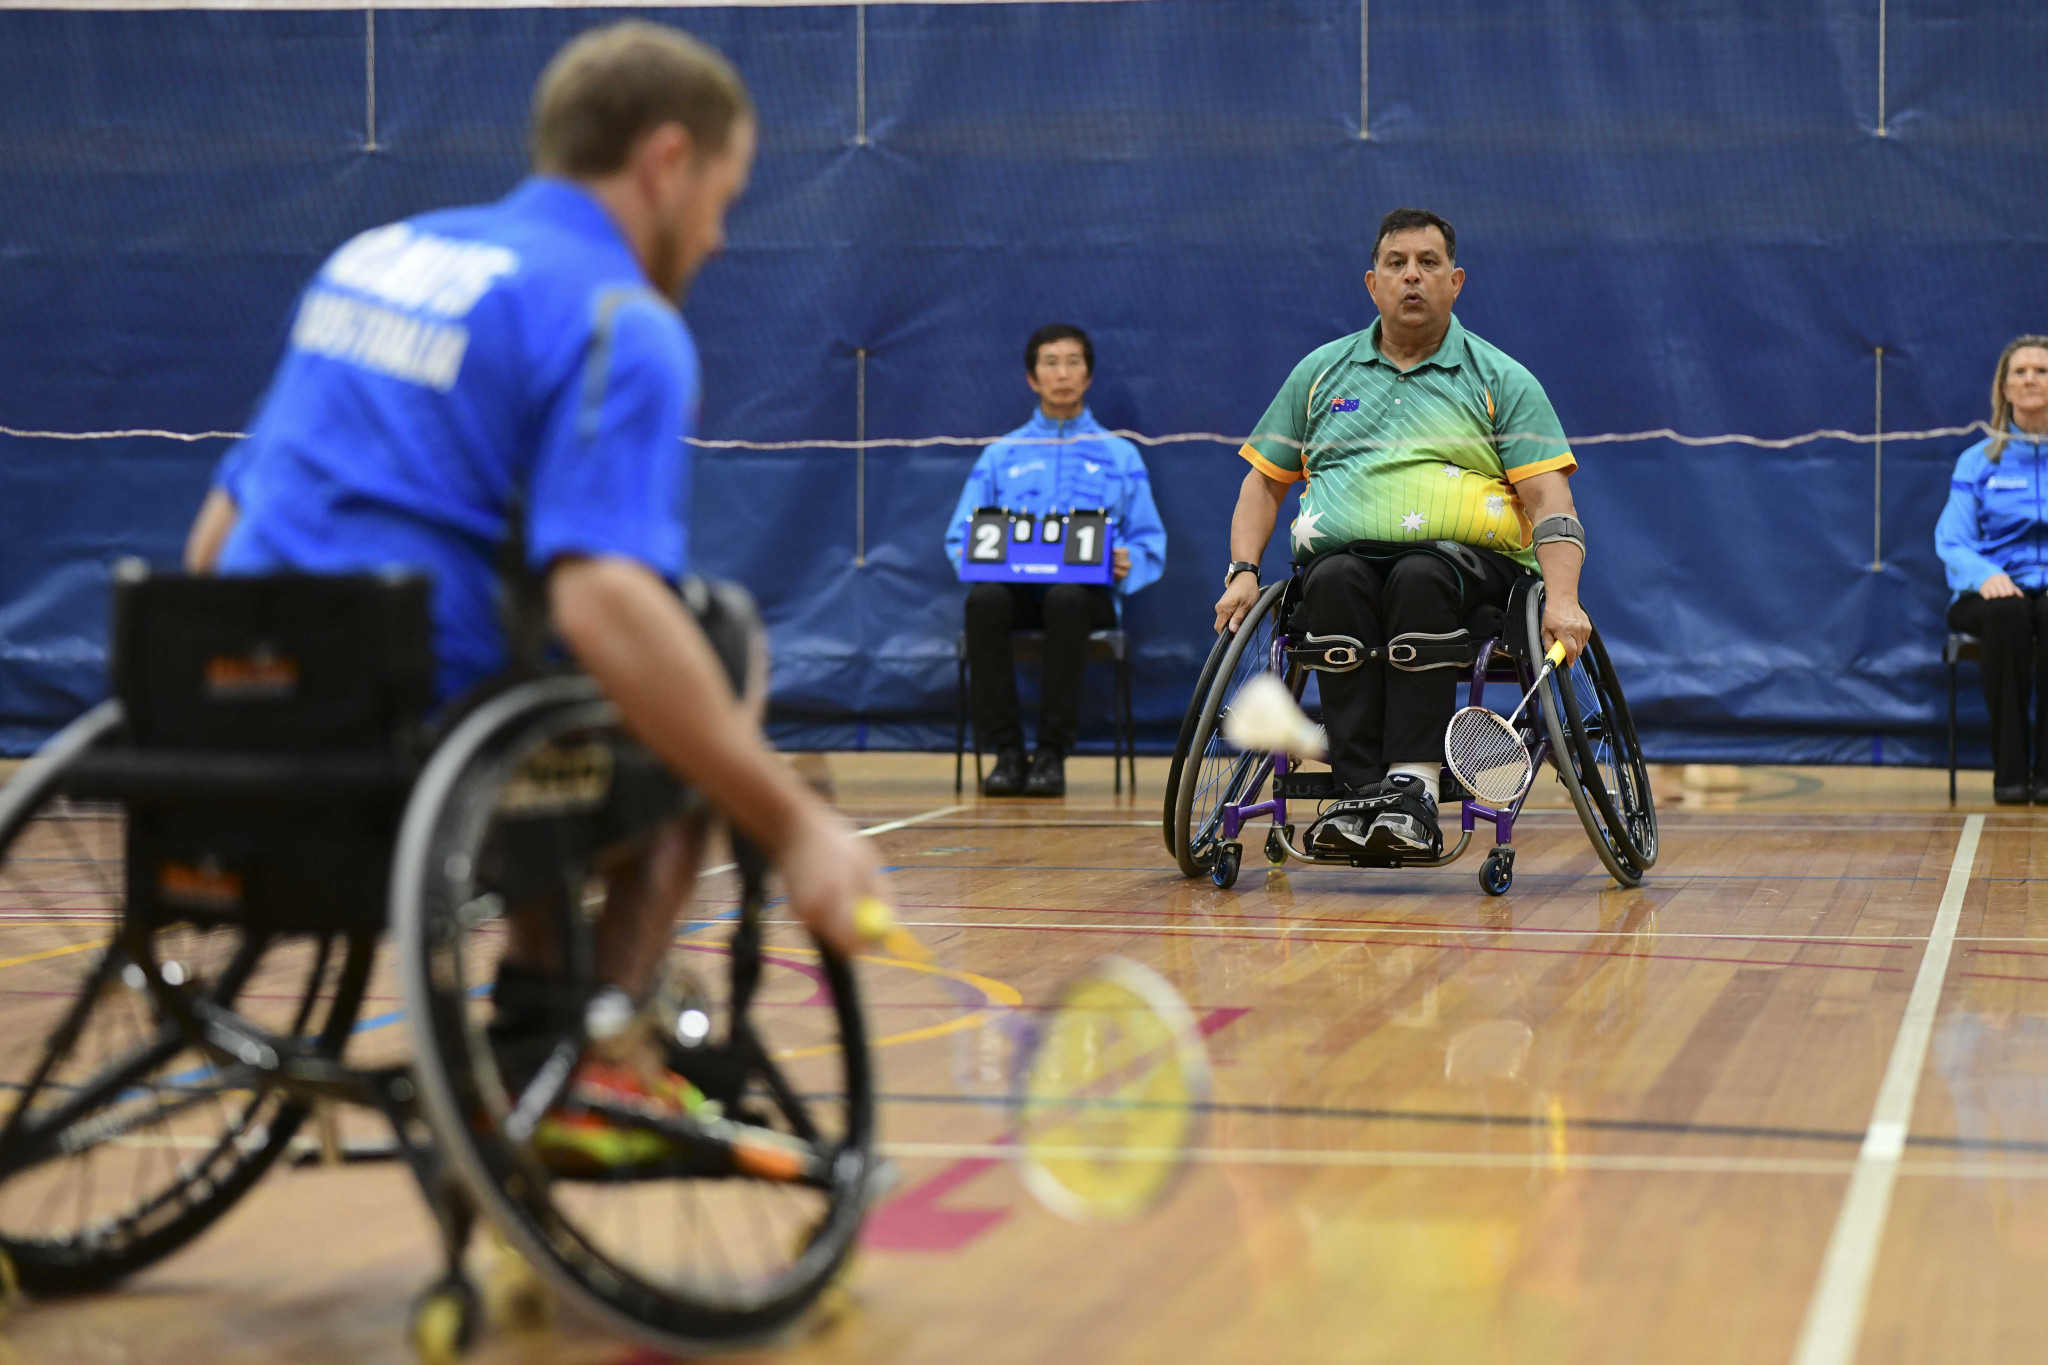 Australia's Richard Davis leads the way for the host nation at the Championships ©Oceania Para-Badminton